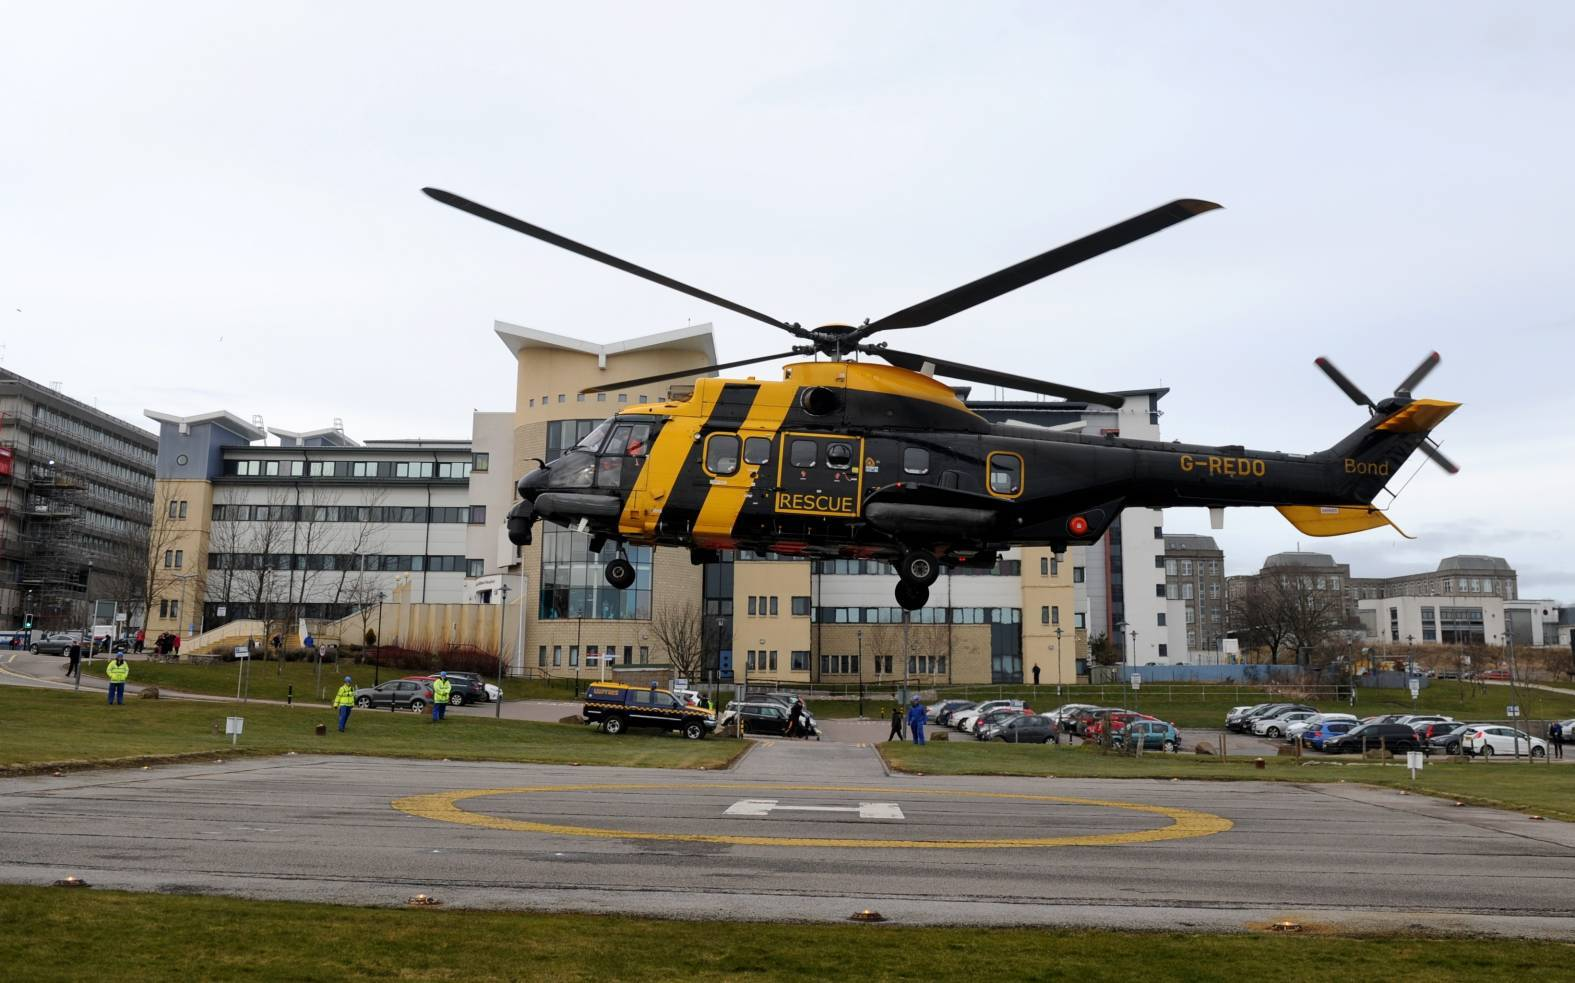 The Coastguard helicopter arrives at Aberdeen Royal Infirmary today